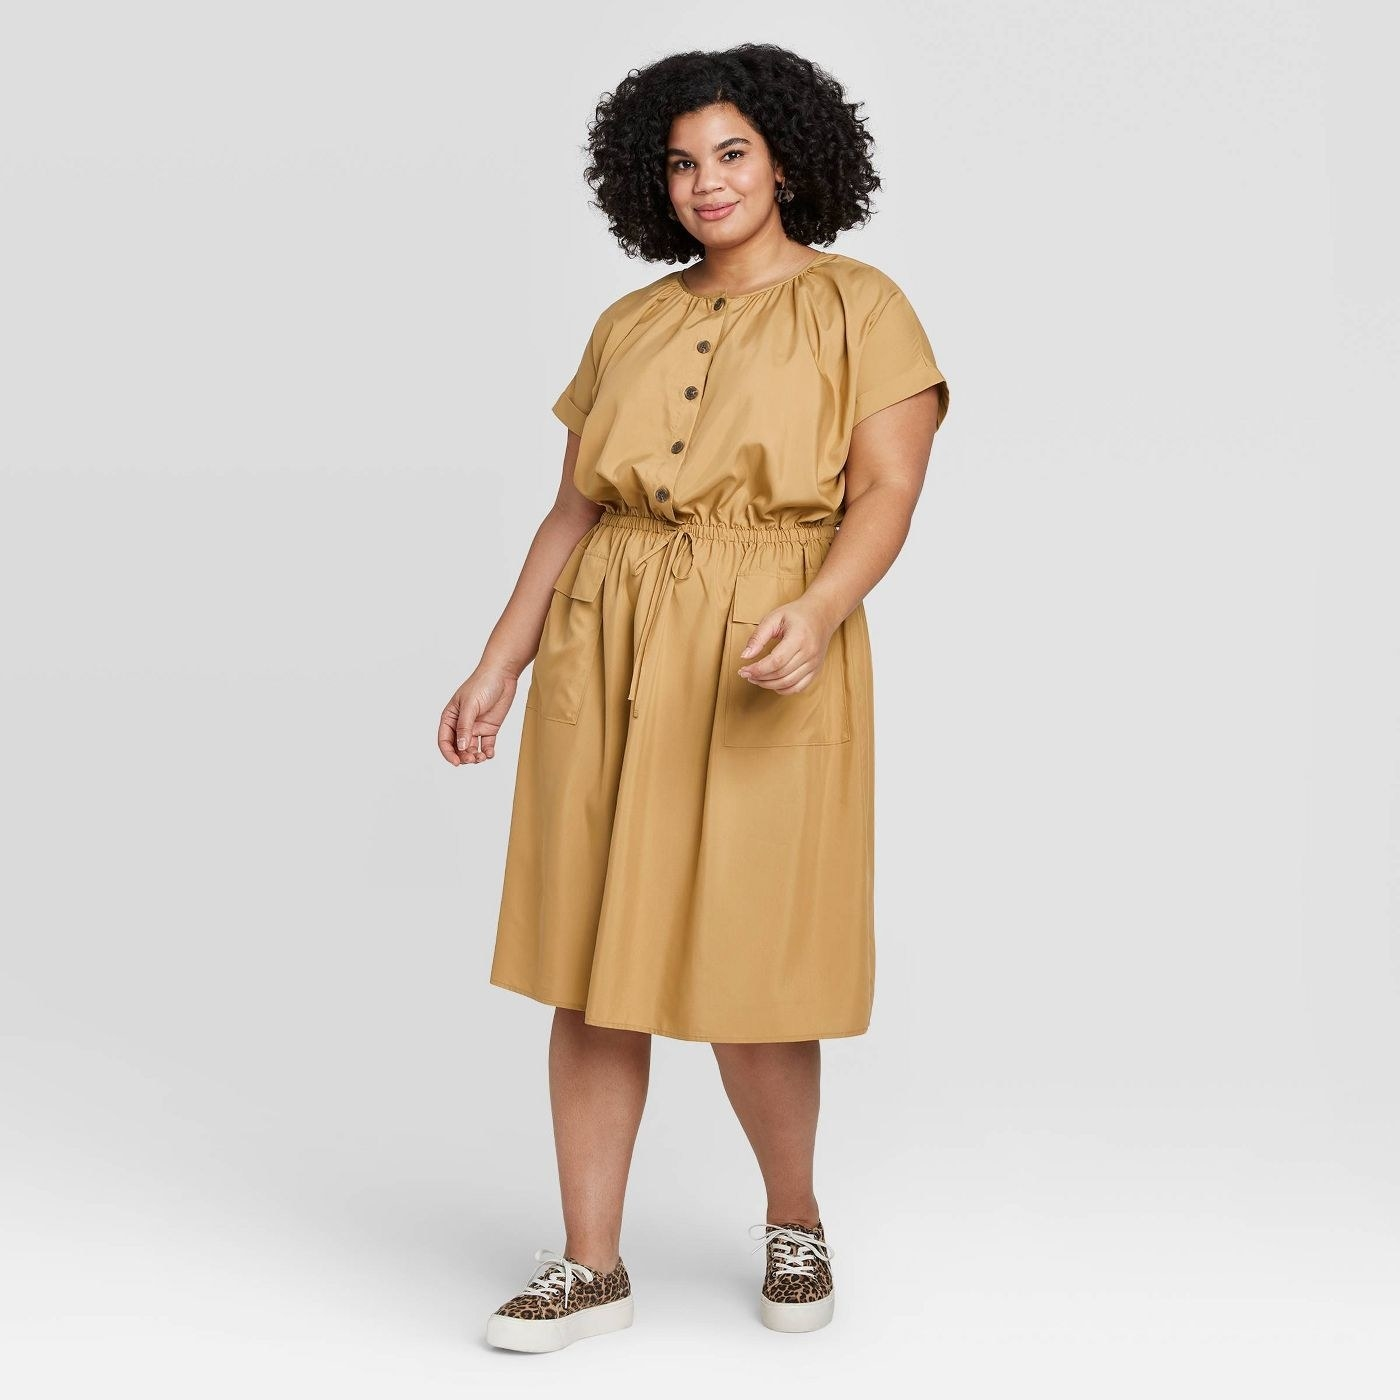 model wearing short sleeve midi dress with button detailing and tie waist